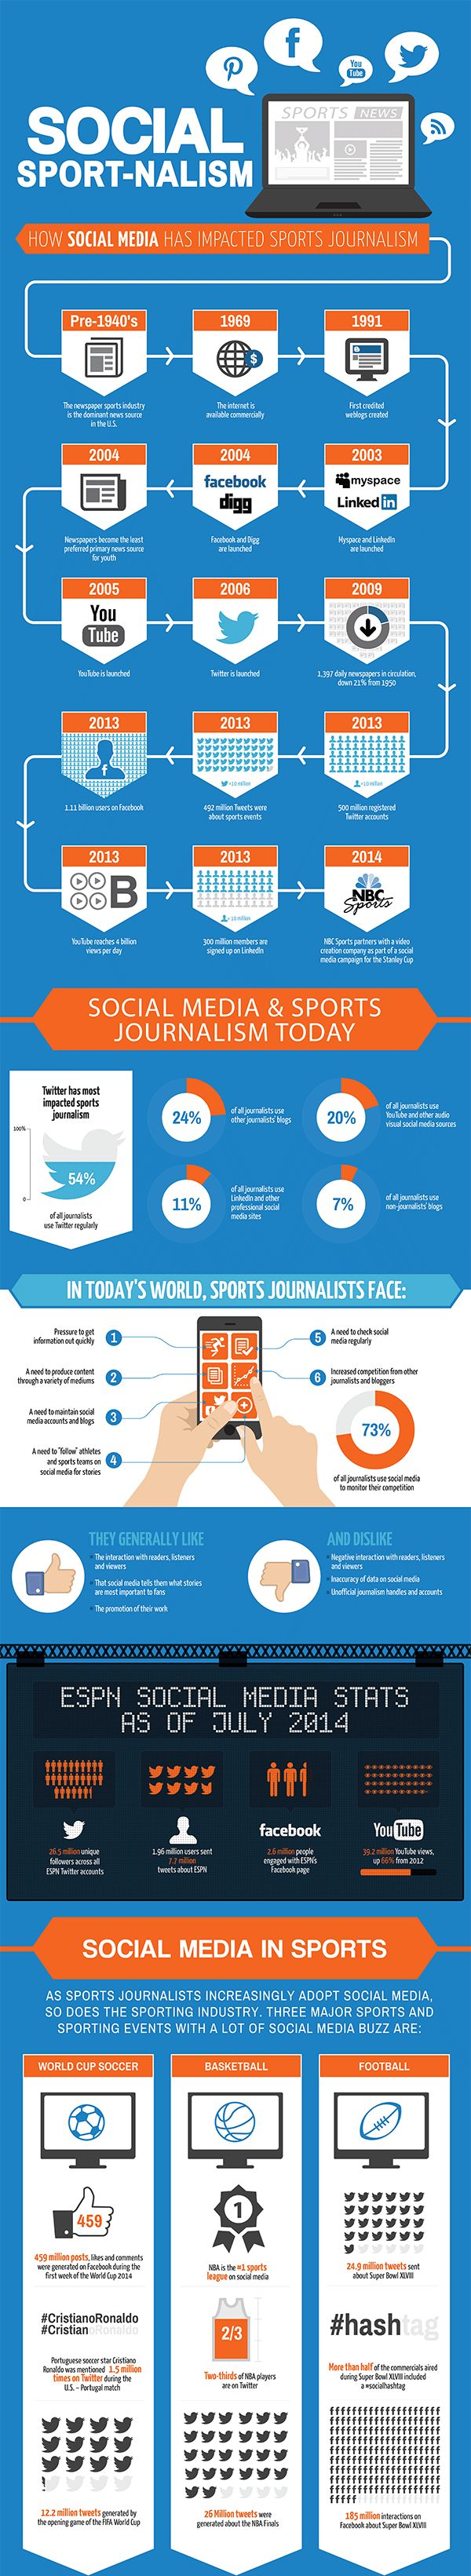 Social media has had a profound effect on the evolution of sports journalism.